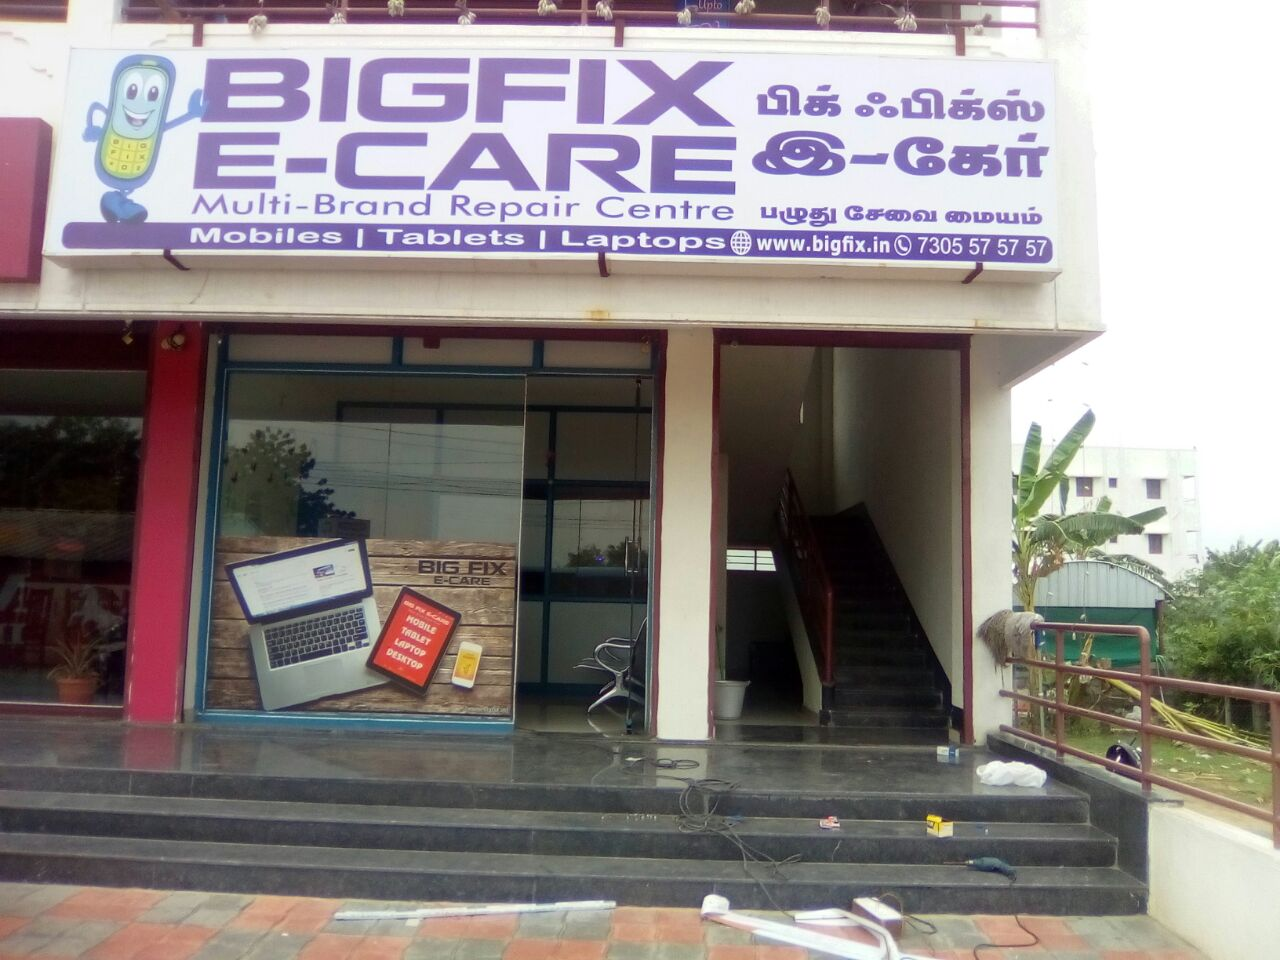 Bigfix Ecare coimabatore - cell phone repair franchise opportunities